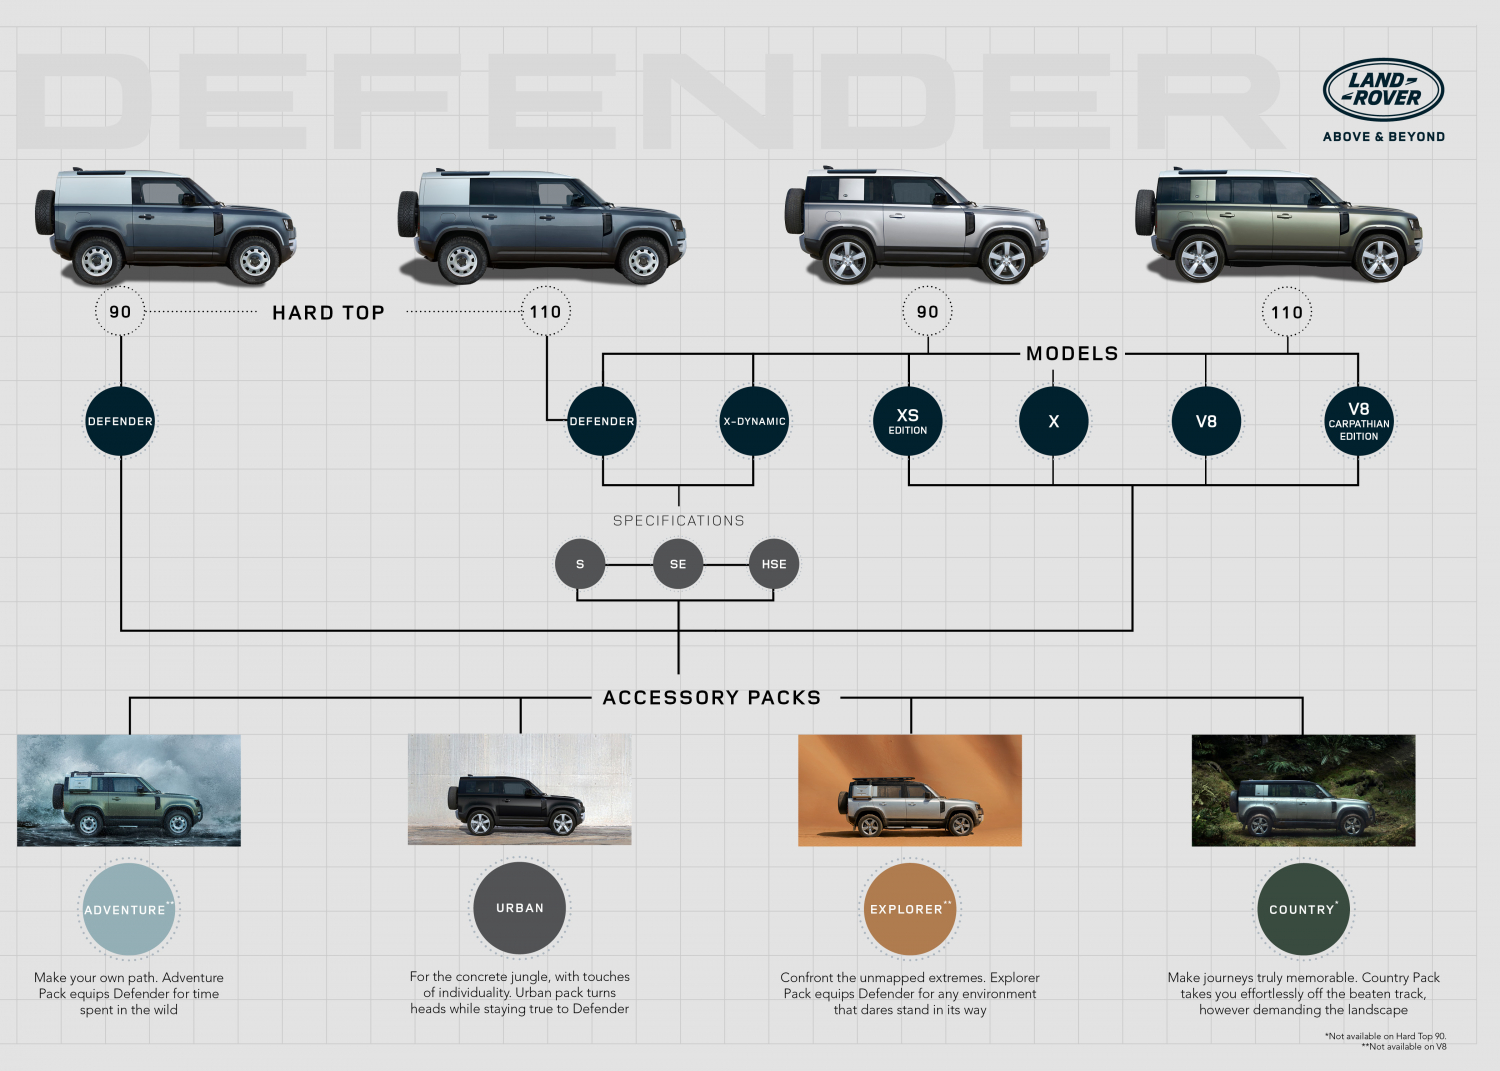 Land Rover Defender Crowned Supreme Winner Women's World Car of the Year 2021 - Image 2